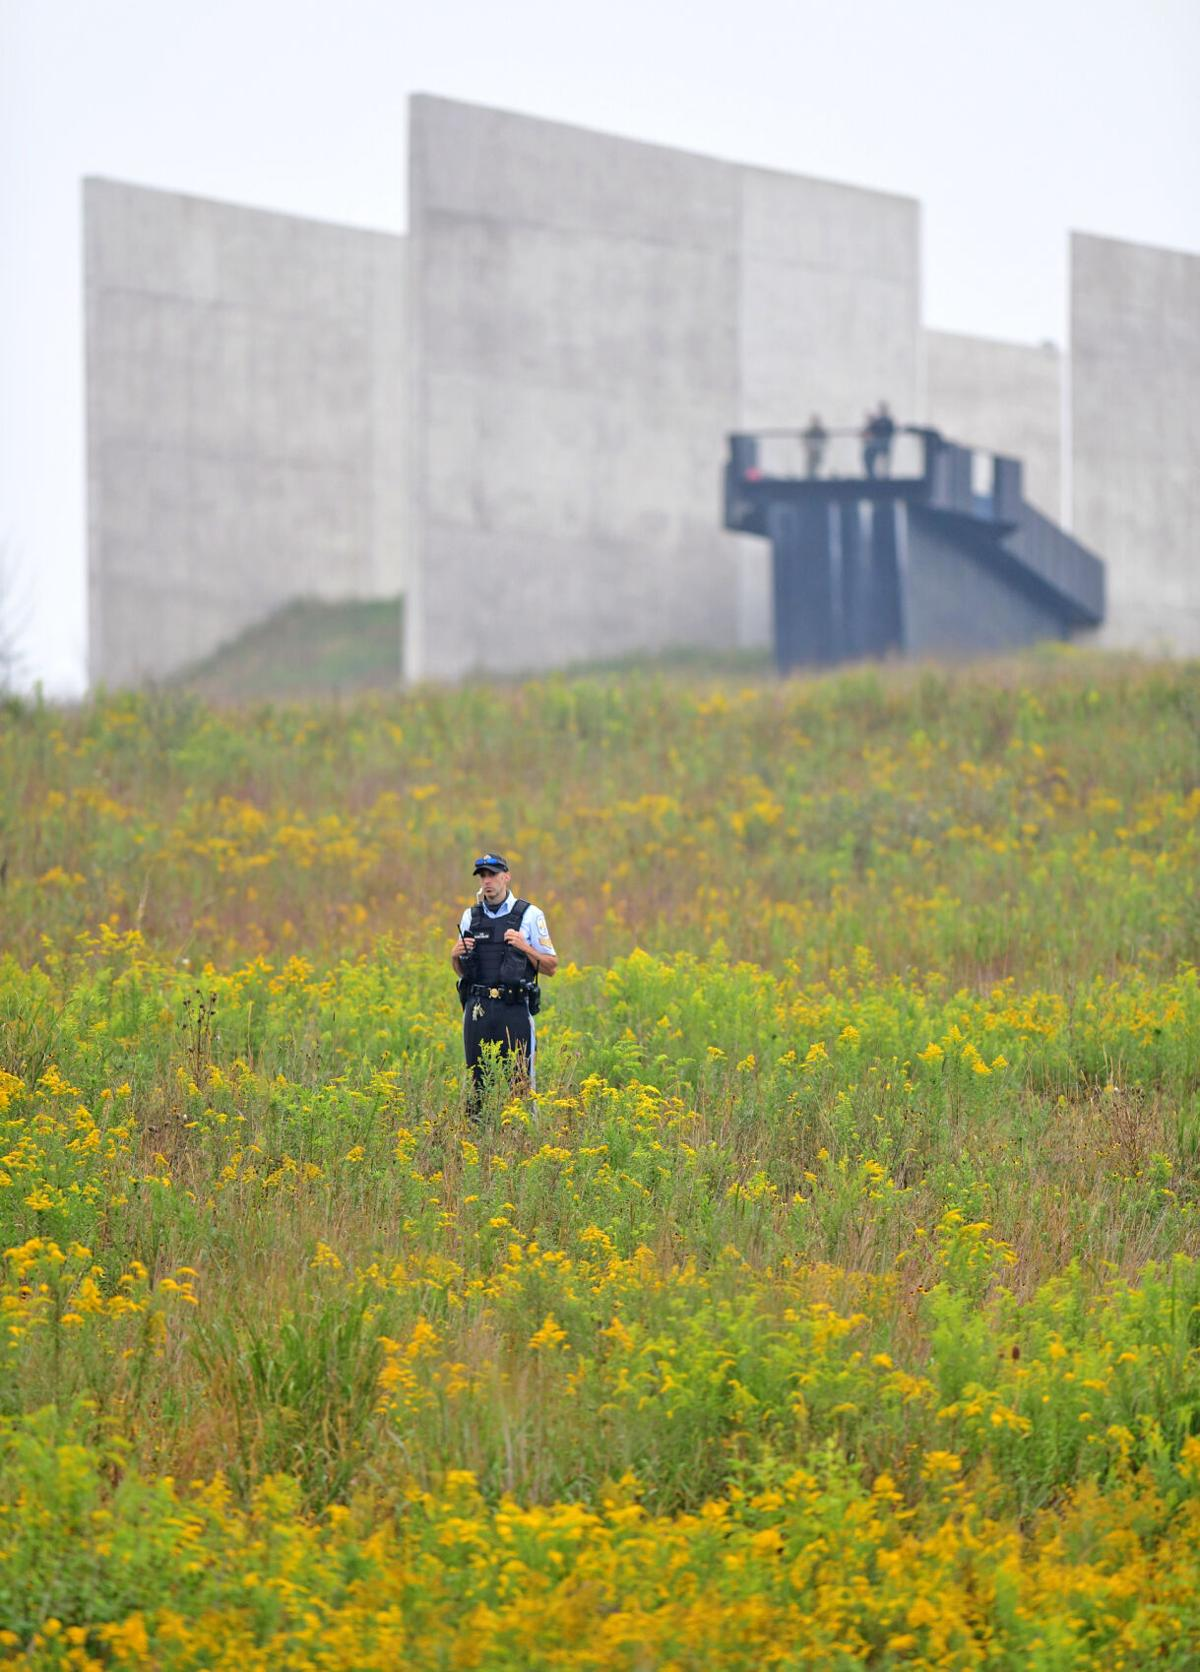 Flight 93 National Memorial | Police